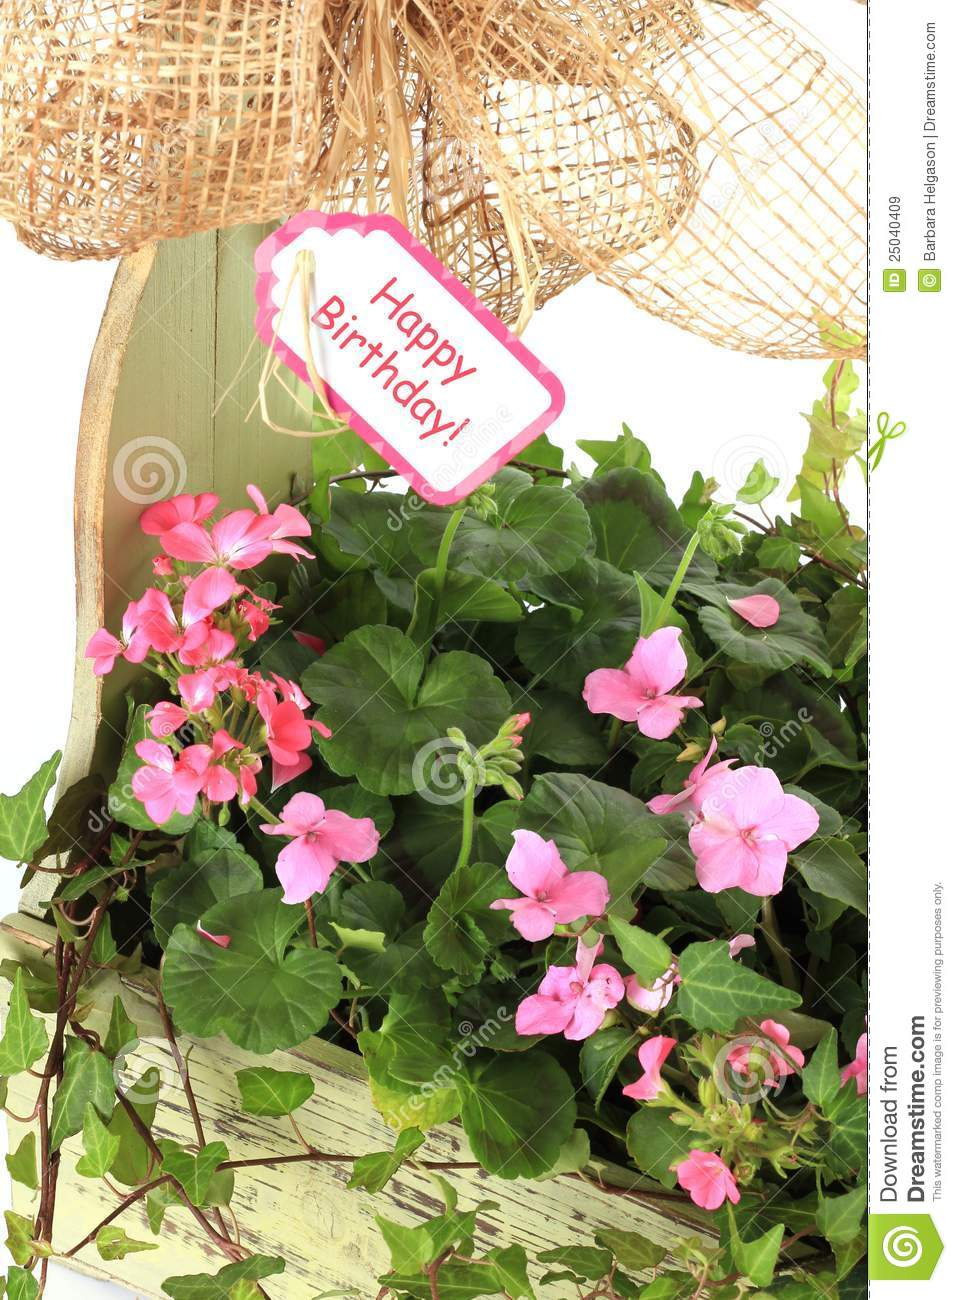 Happy birthday flowers stock image image of white birthday 25040409 happy birthday flowers izmirmasajfo Image collections